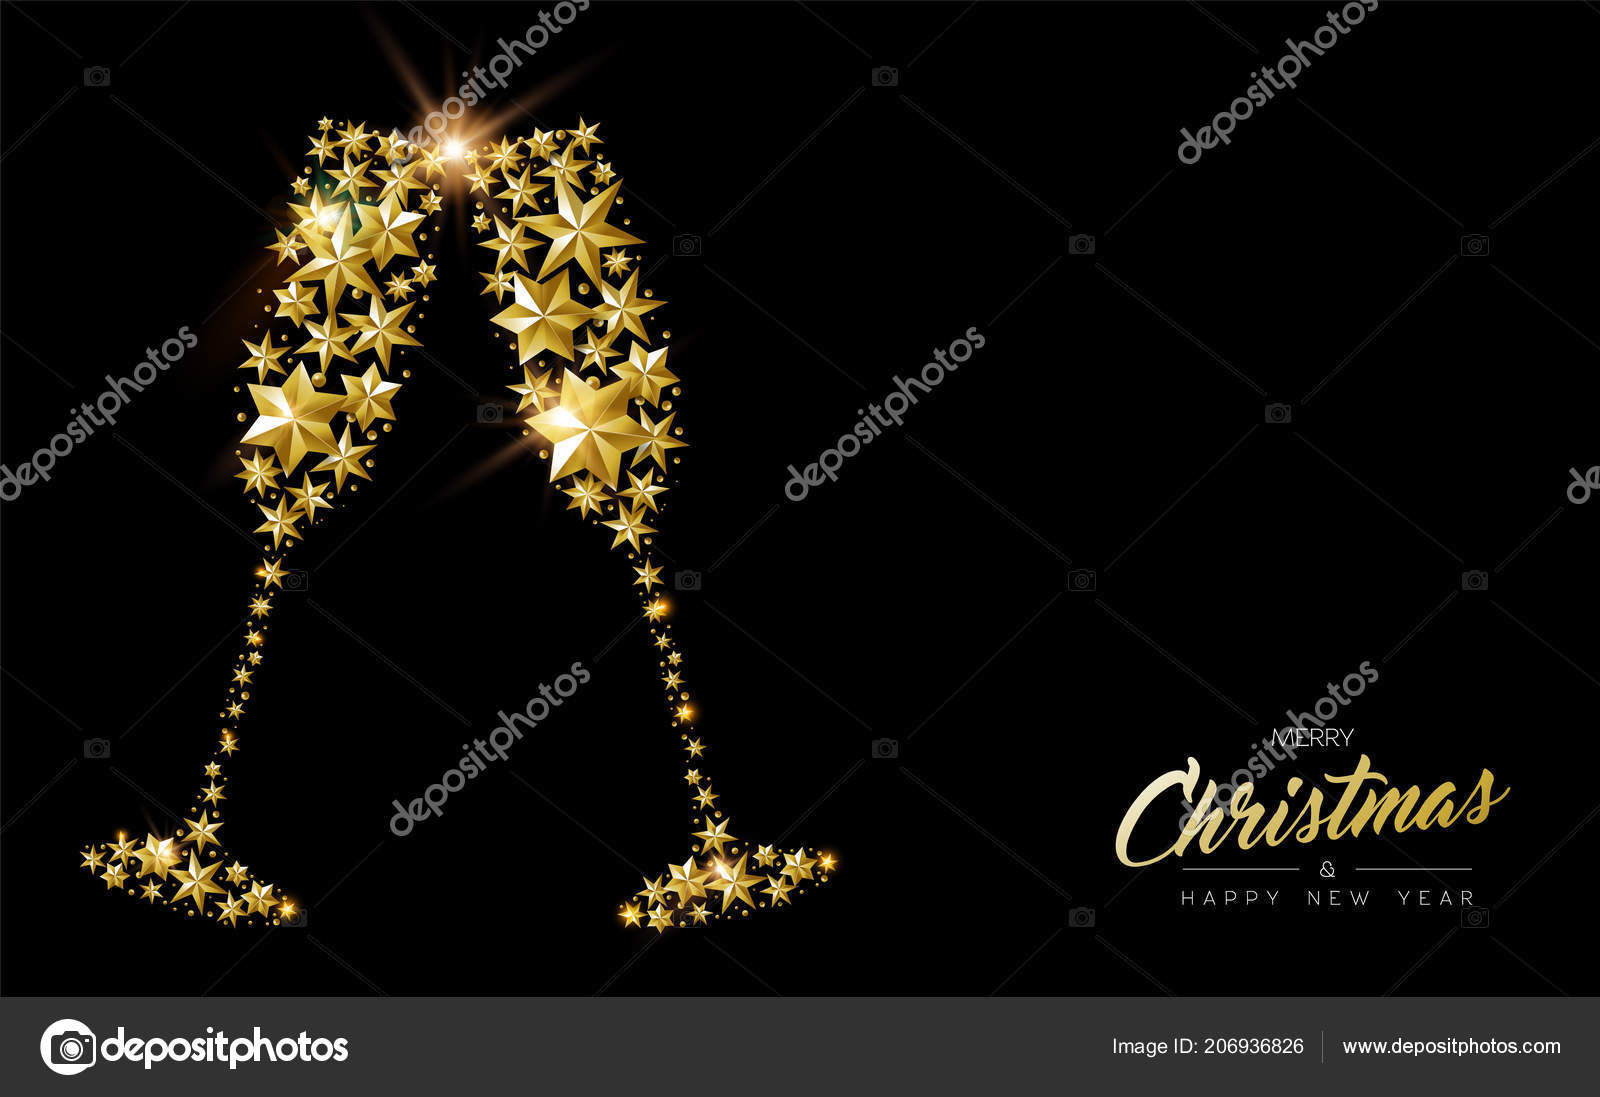 depositphotos_206936826 stock illustration merry christmas happy new year jpg